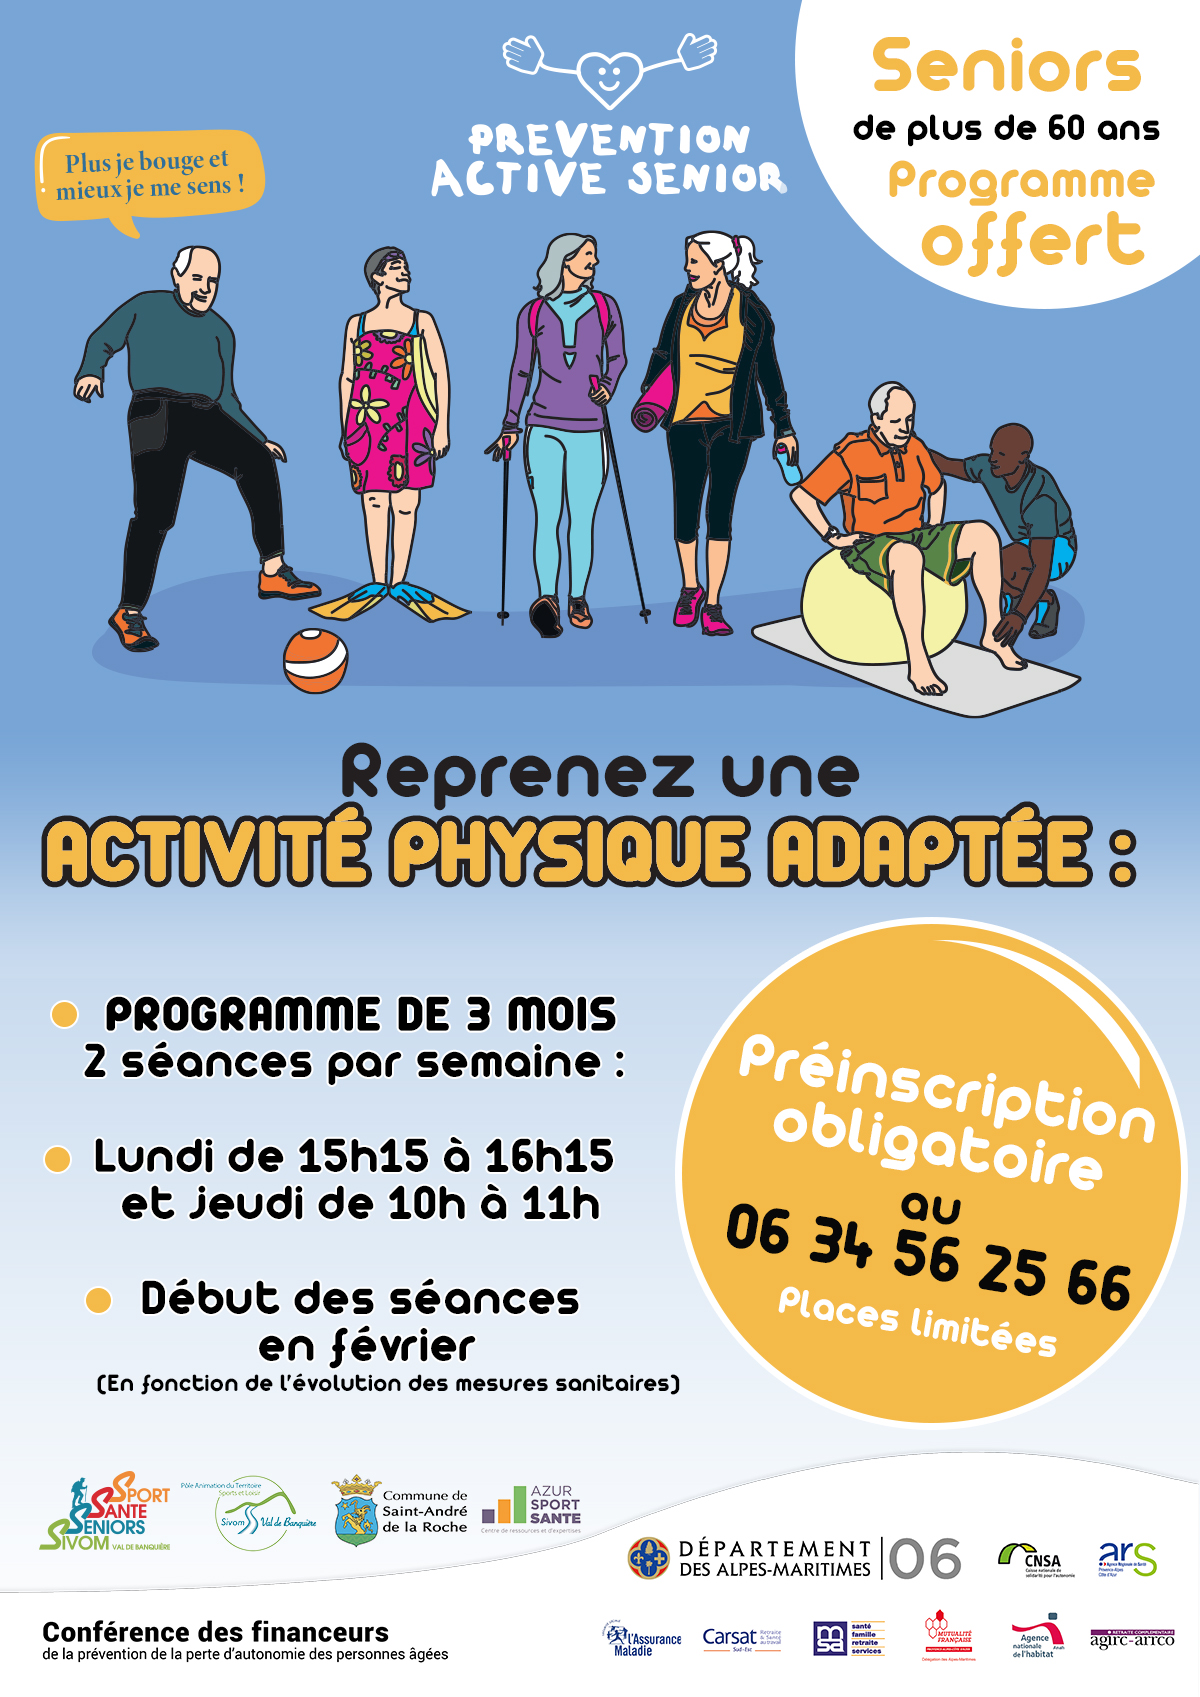 Inscription : Prévention Active Senior